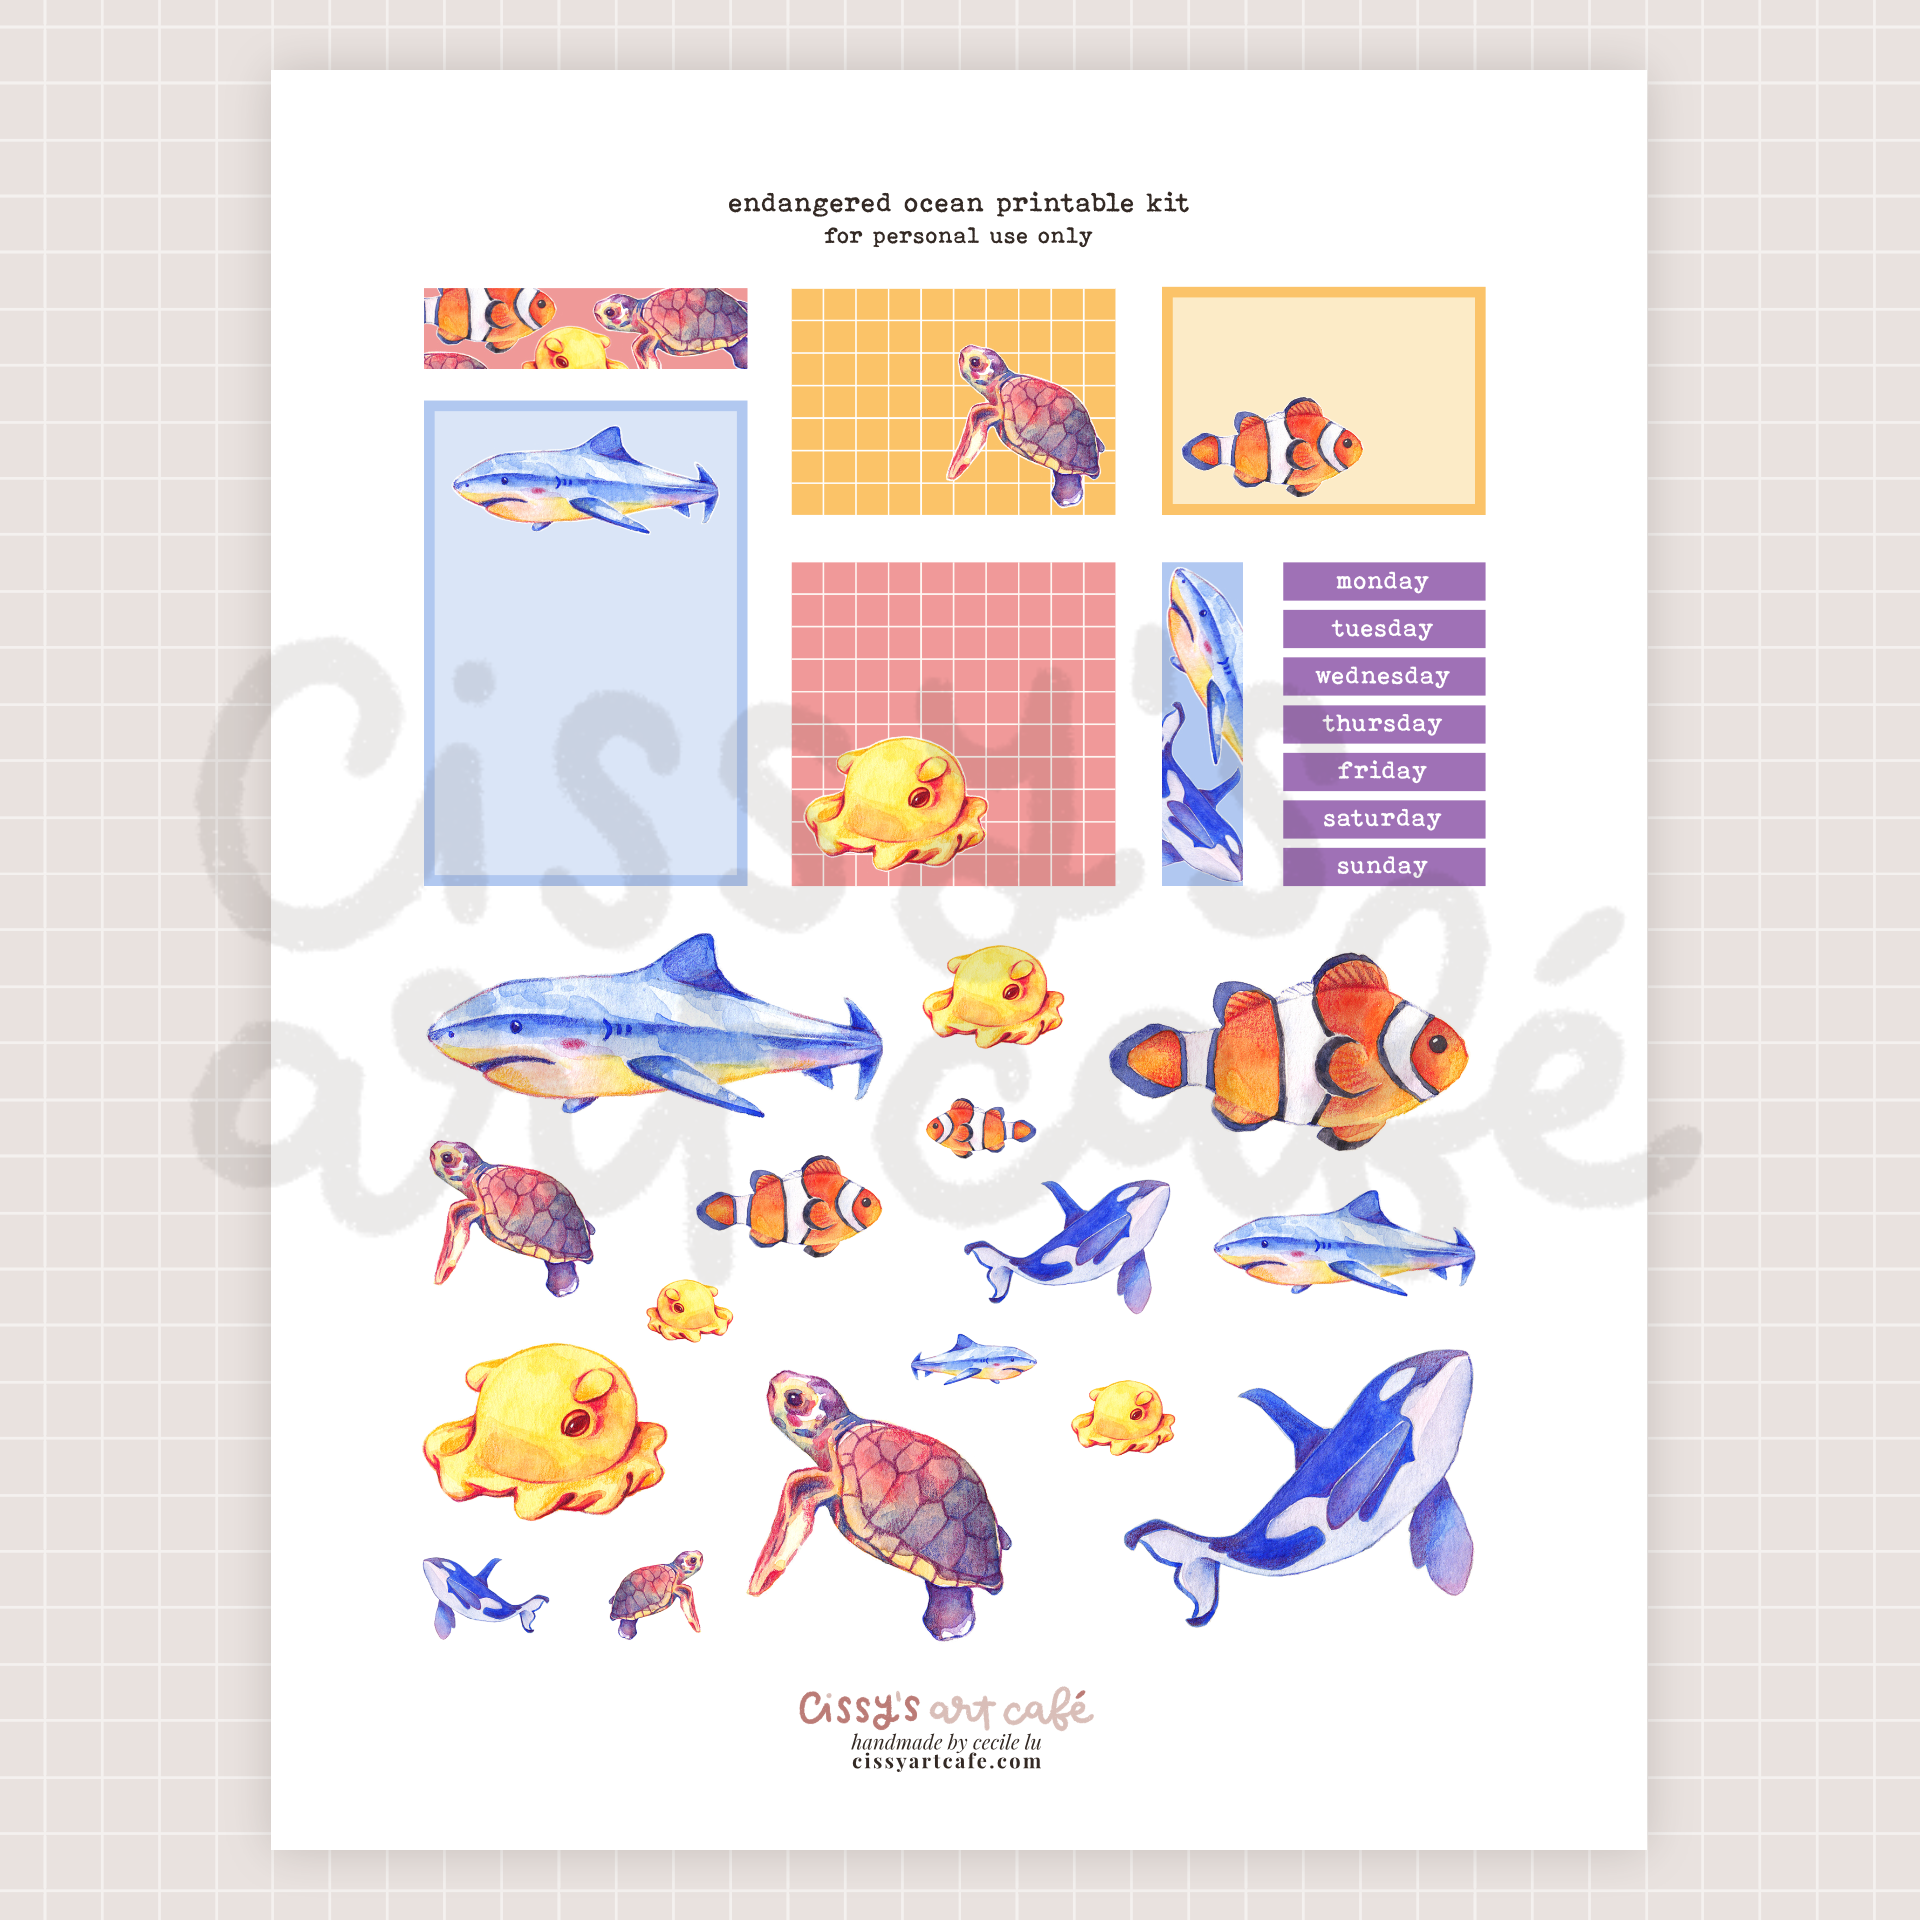 endangered ocean printable kit @ cissy's art café